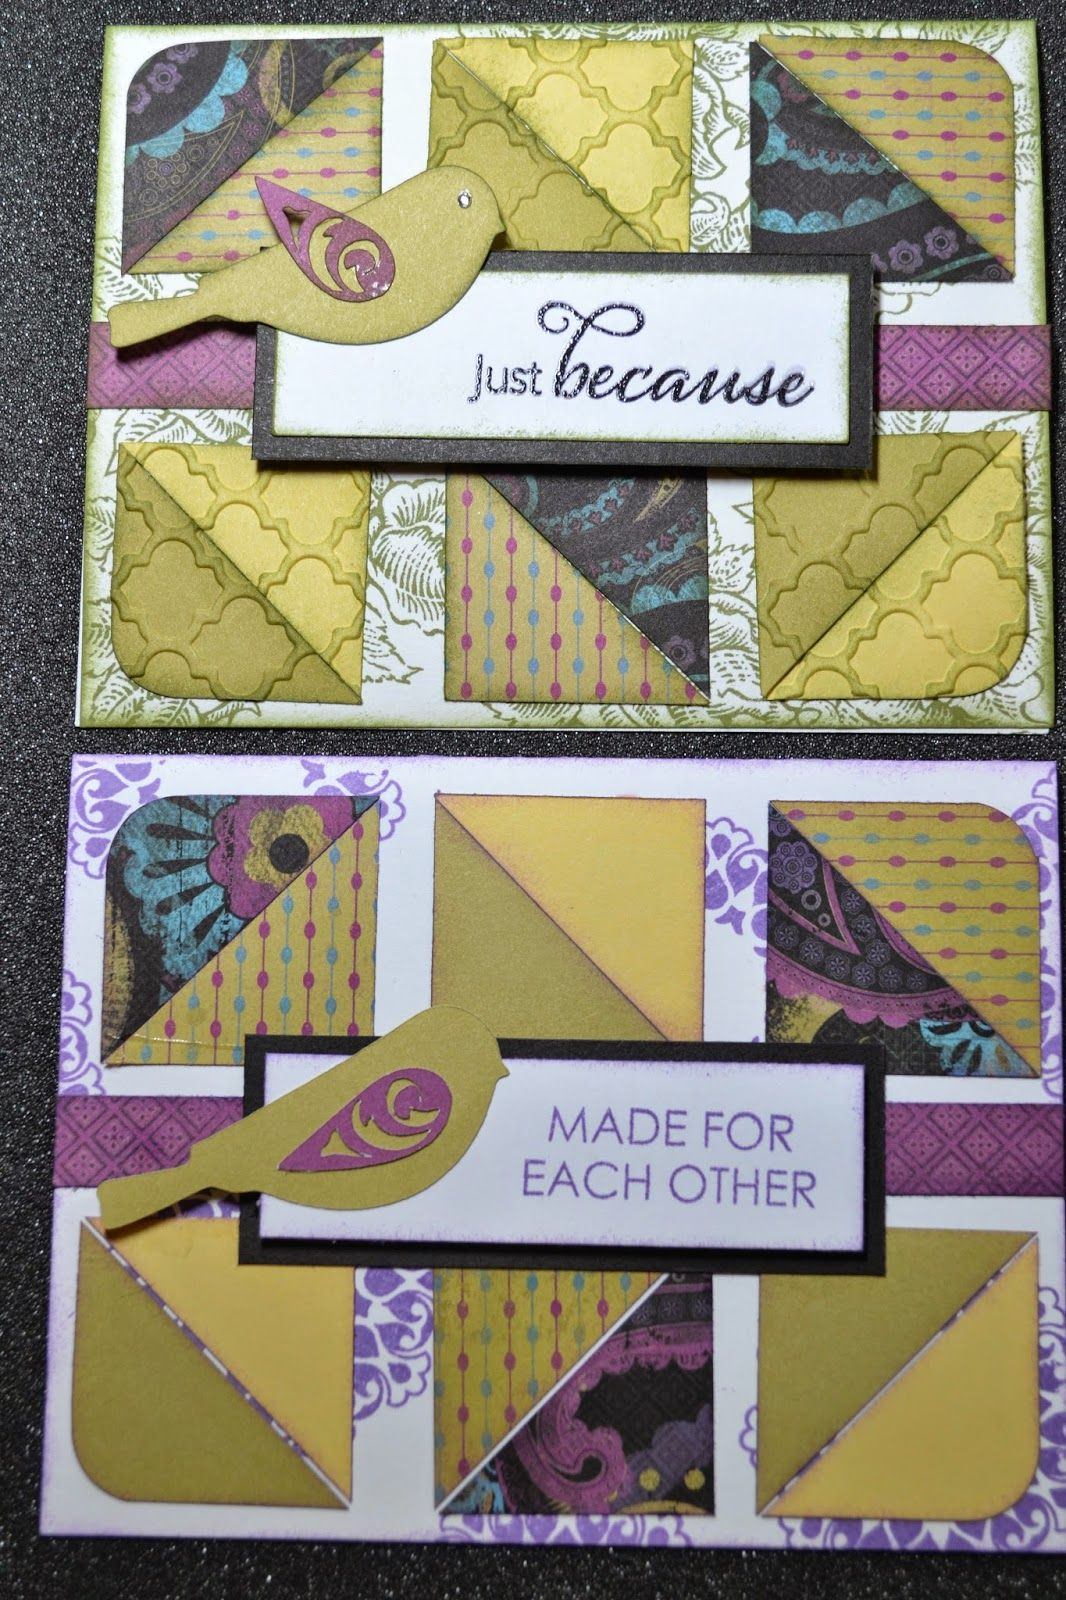 Kim Ferguson's Crafting Blog - Rubber Stamping and Scrapbooking: Just Because Card - 2015